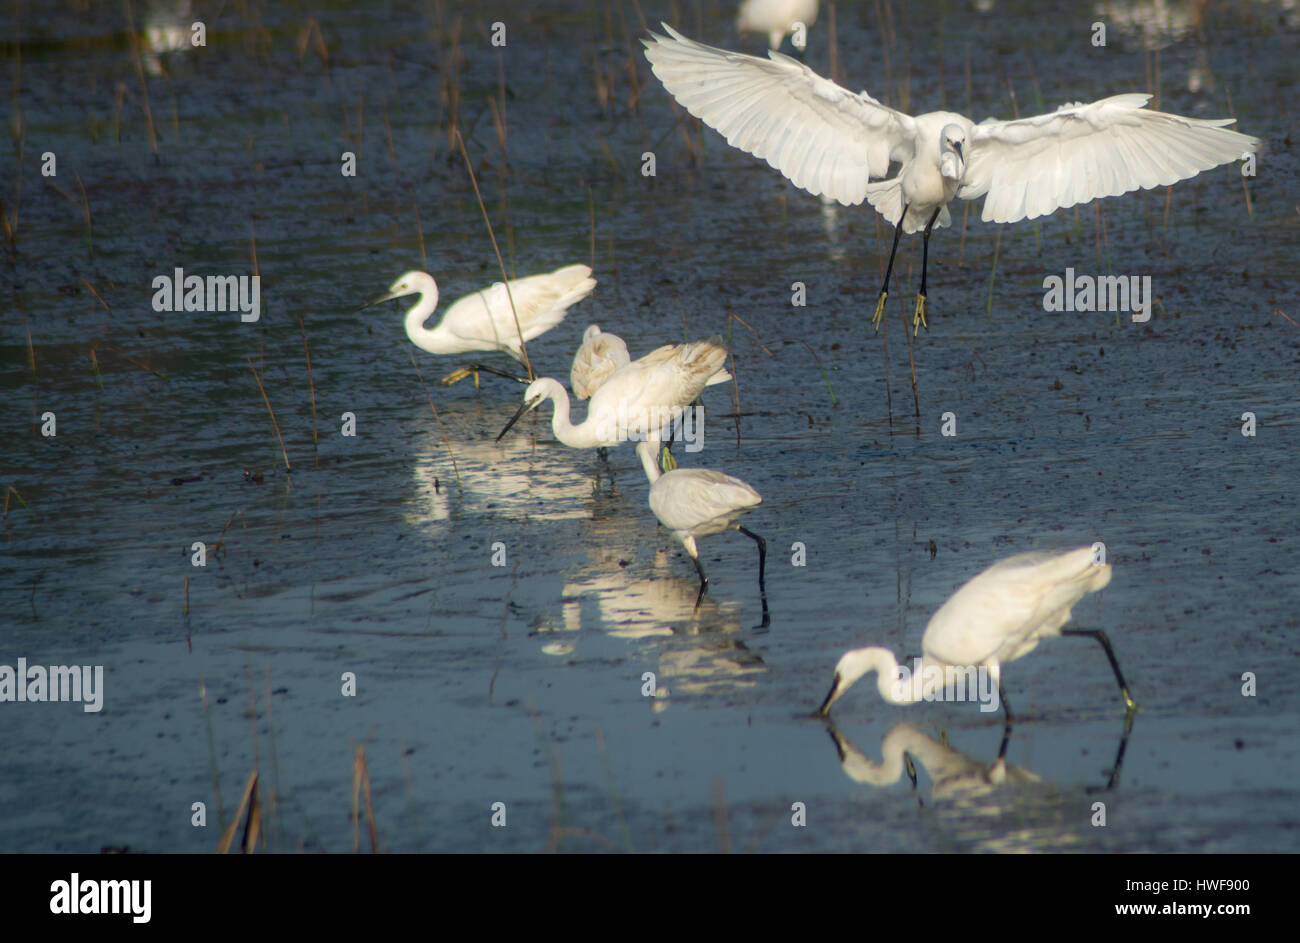 A Little Heron Bird Flying over other birds engaged in feeding themselves Stock Photo